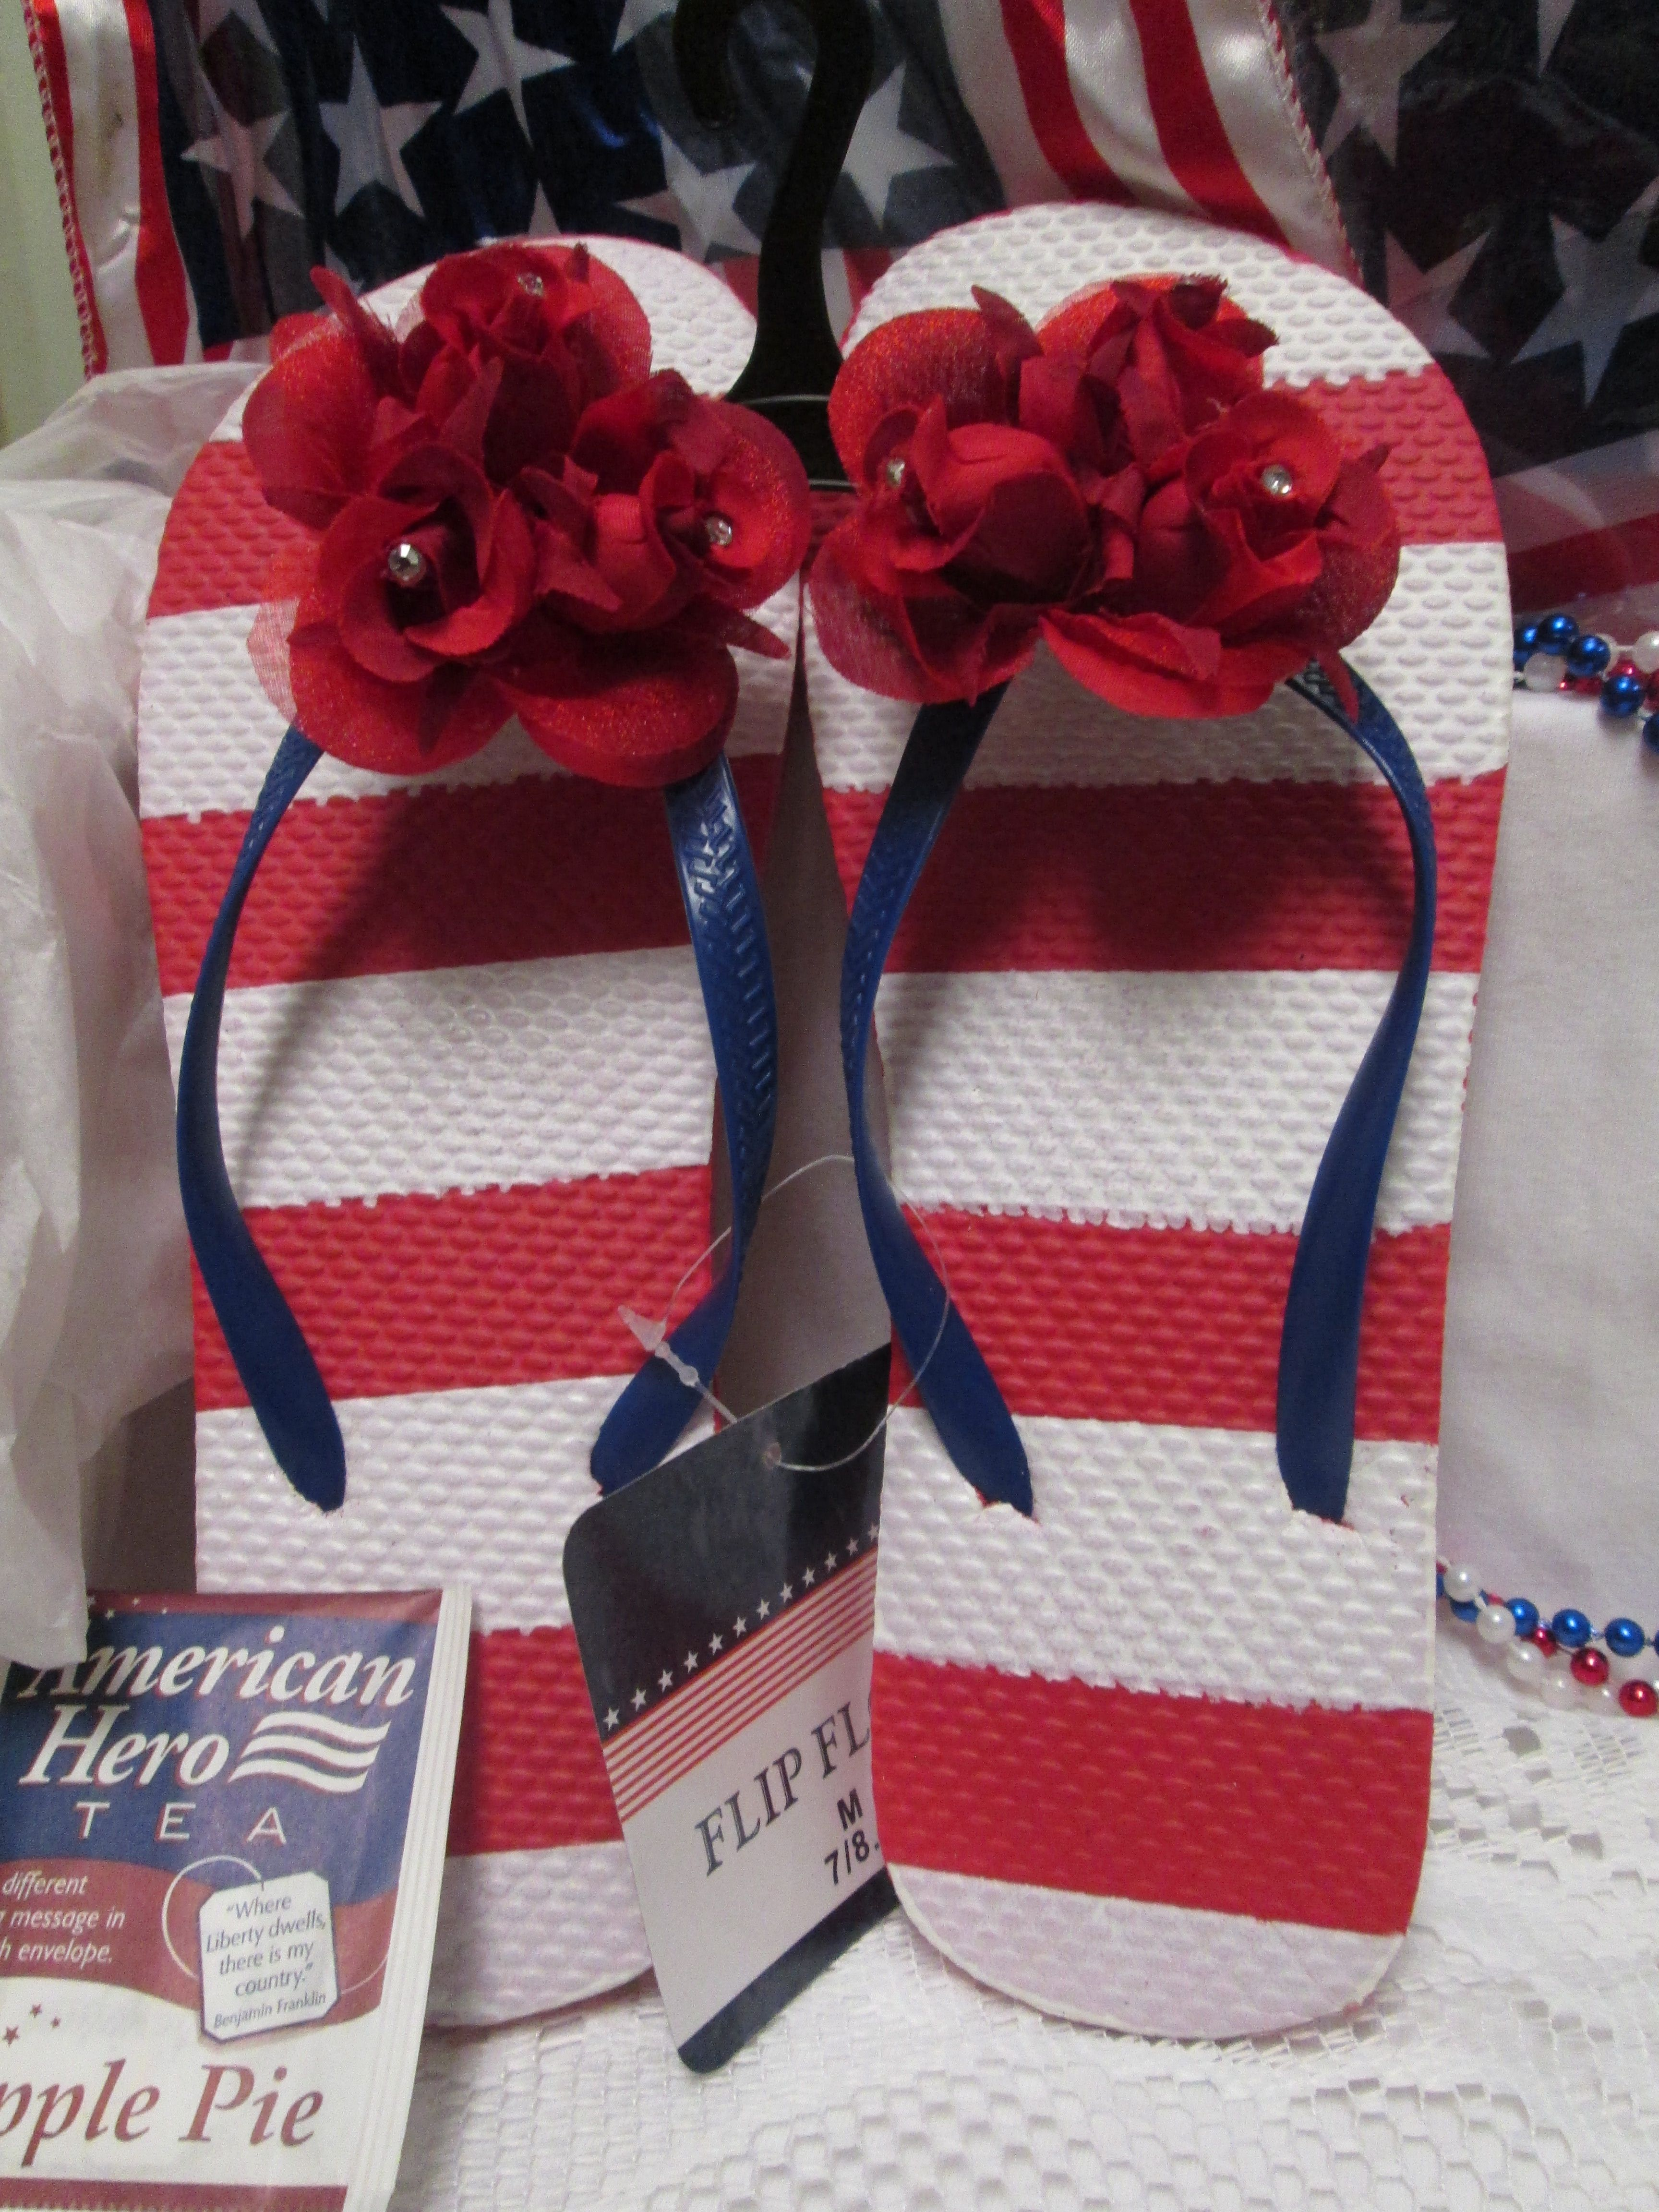 6441bf183 Summer Beach Patriotic Americana Stars Stripes Red White Blue Flip Flop  Sandal Set your toes free